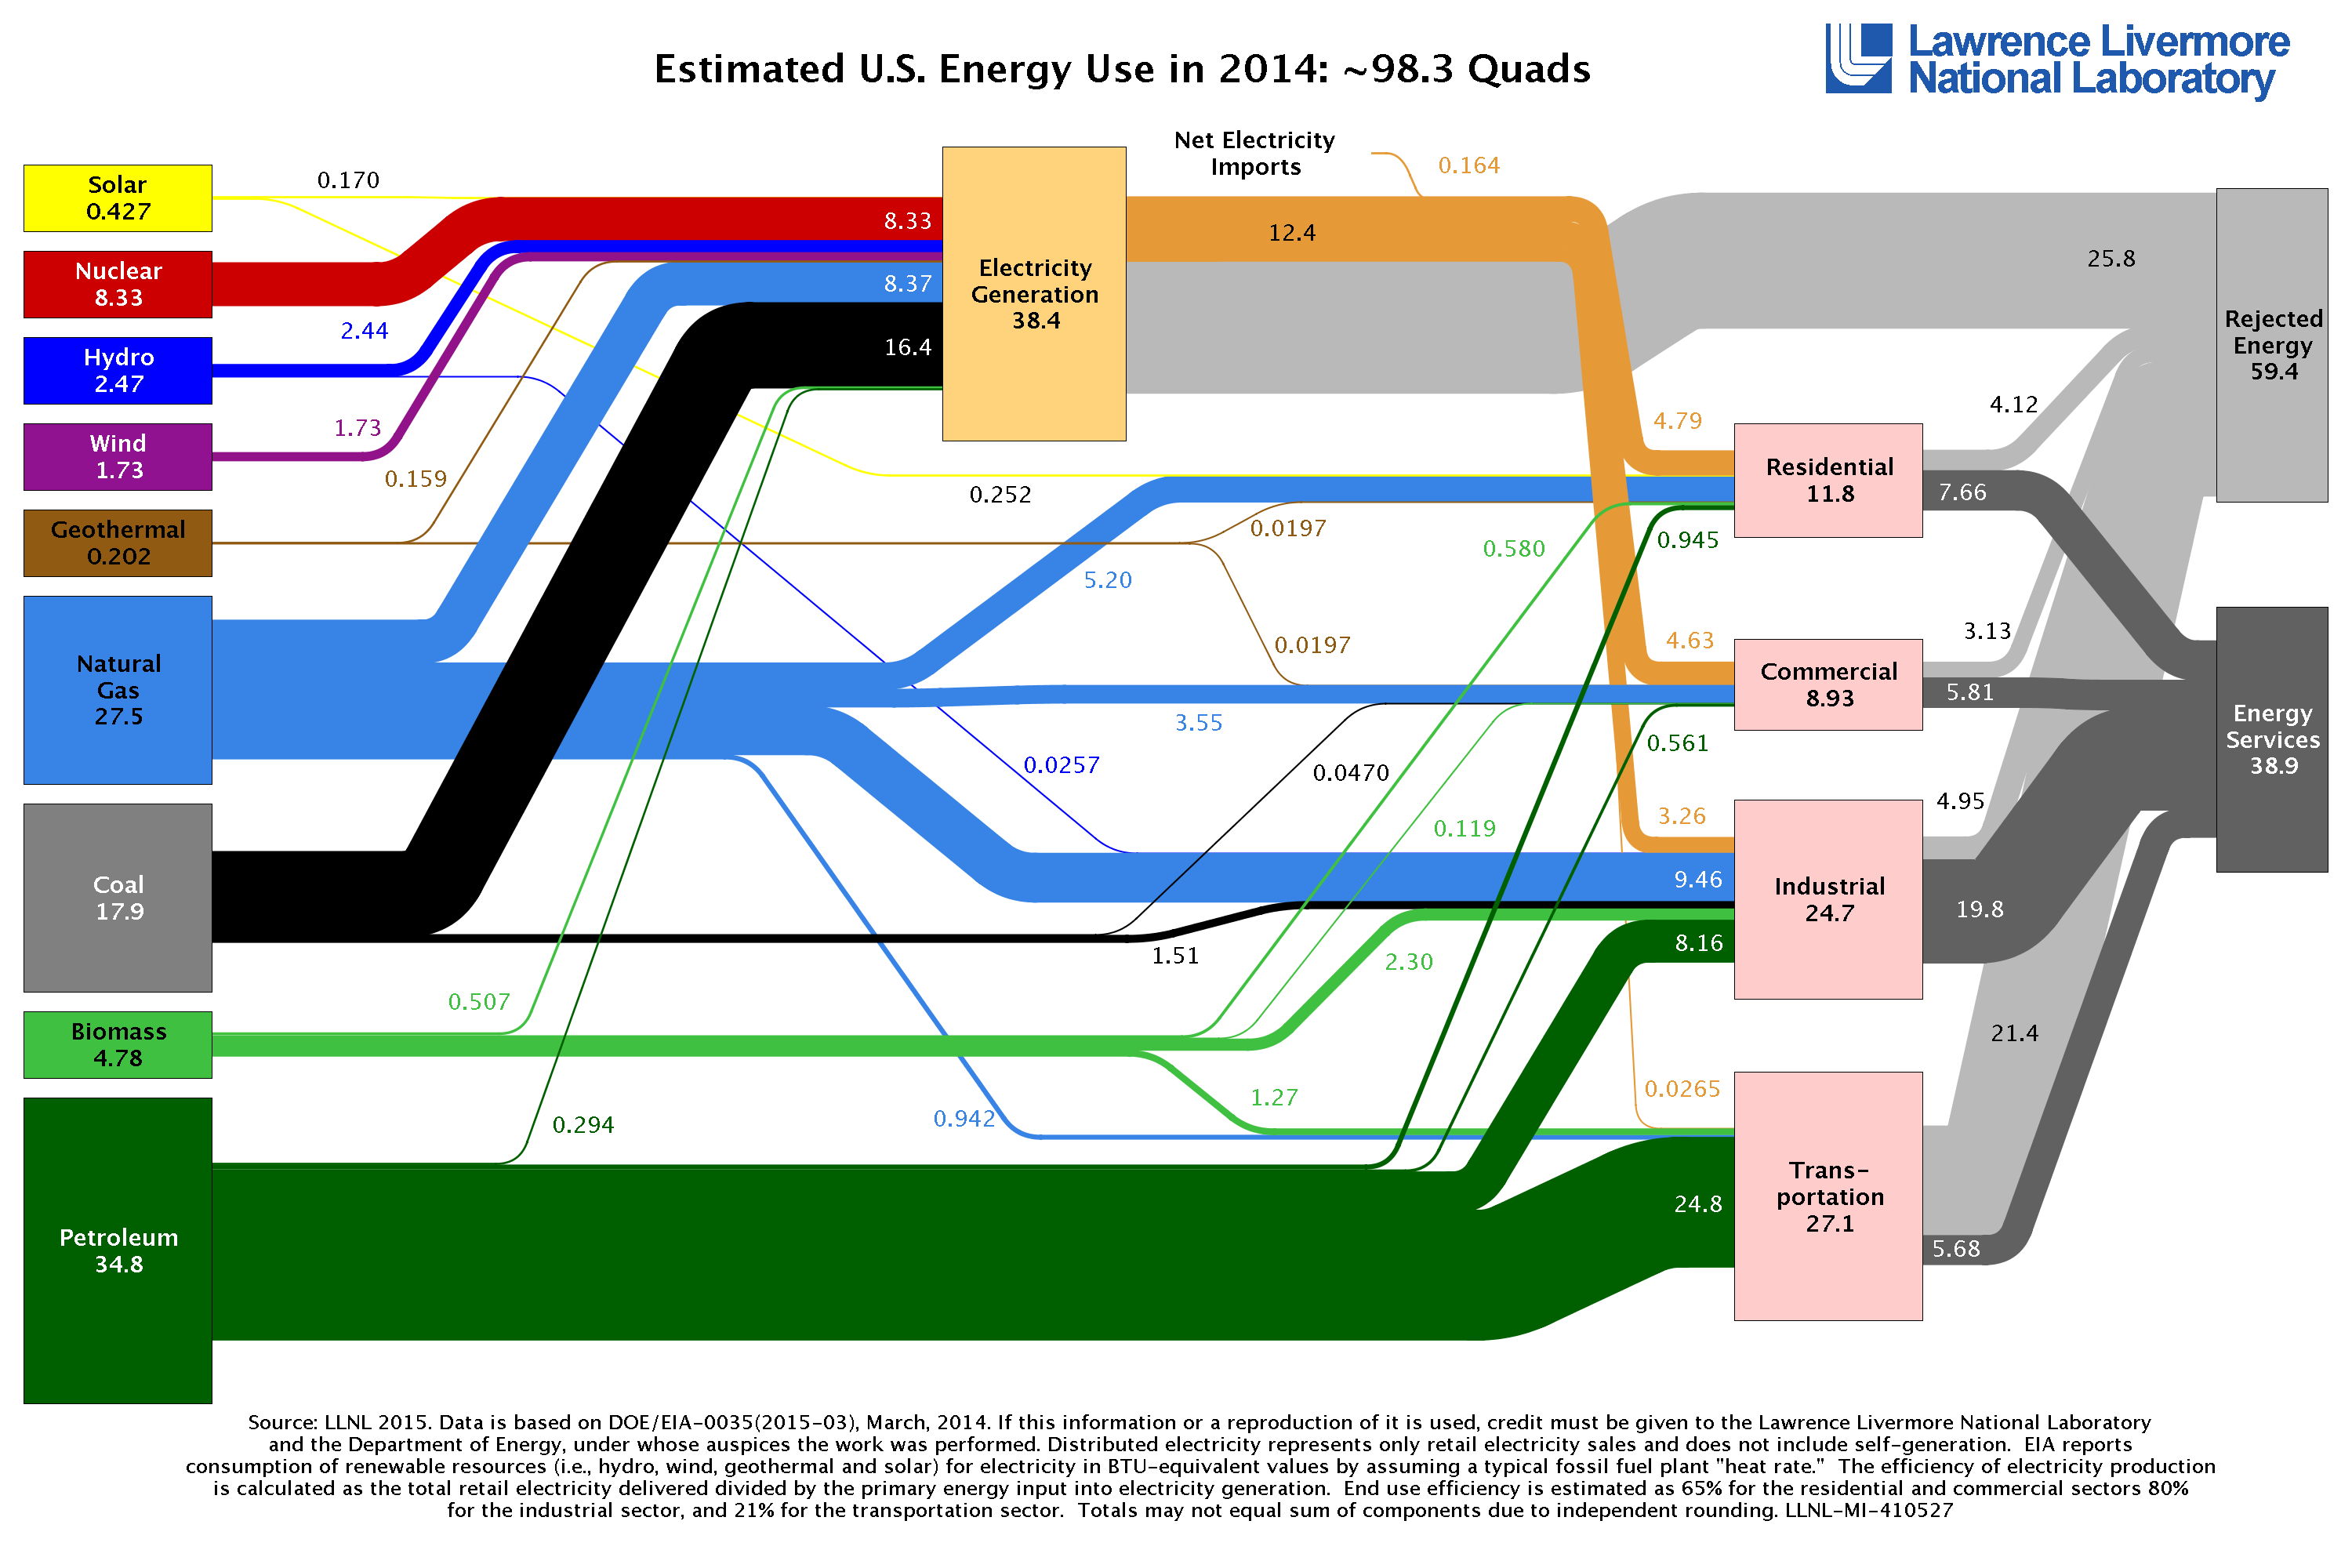 Annual Energy Usage in the United States